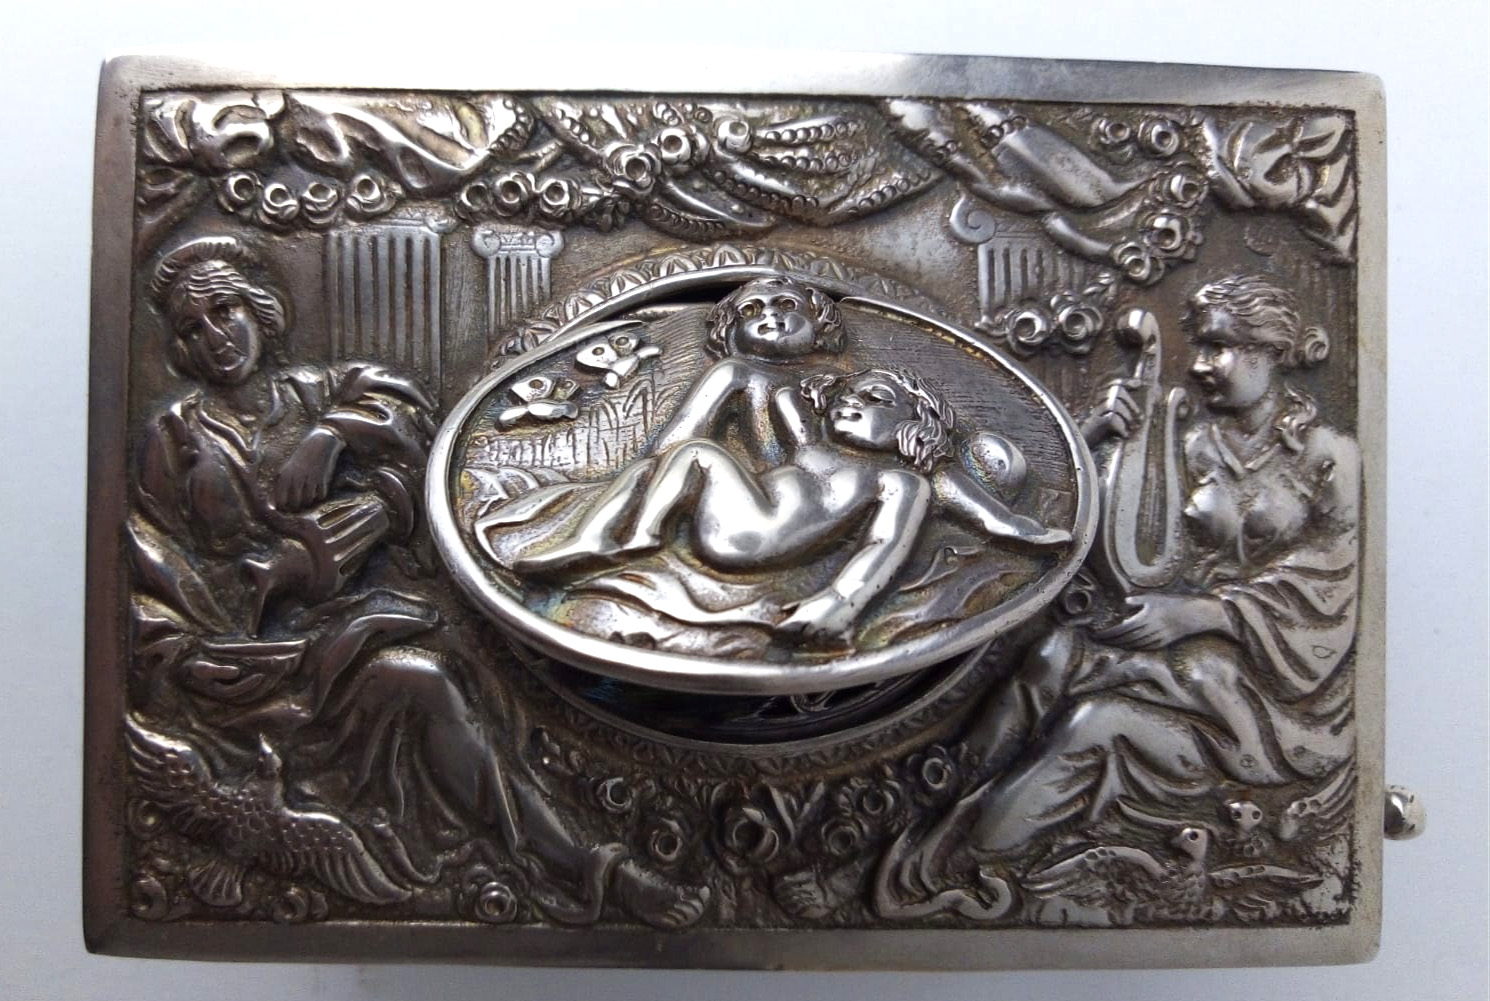 A LATE 19TH/EARLY 20TH CENTURY GERMAN SILVER SINGING BIRD MUSIC BOX Having embossed figural - Image 2 of 4